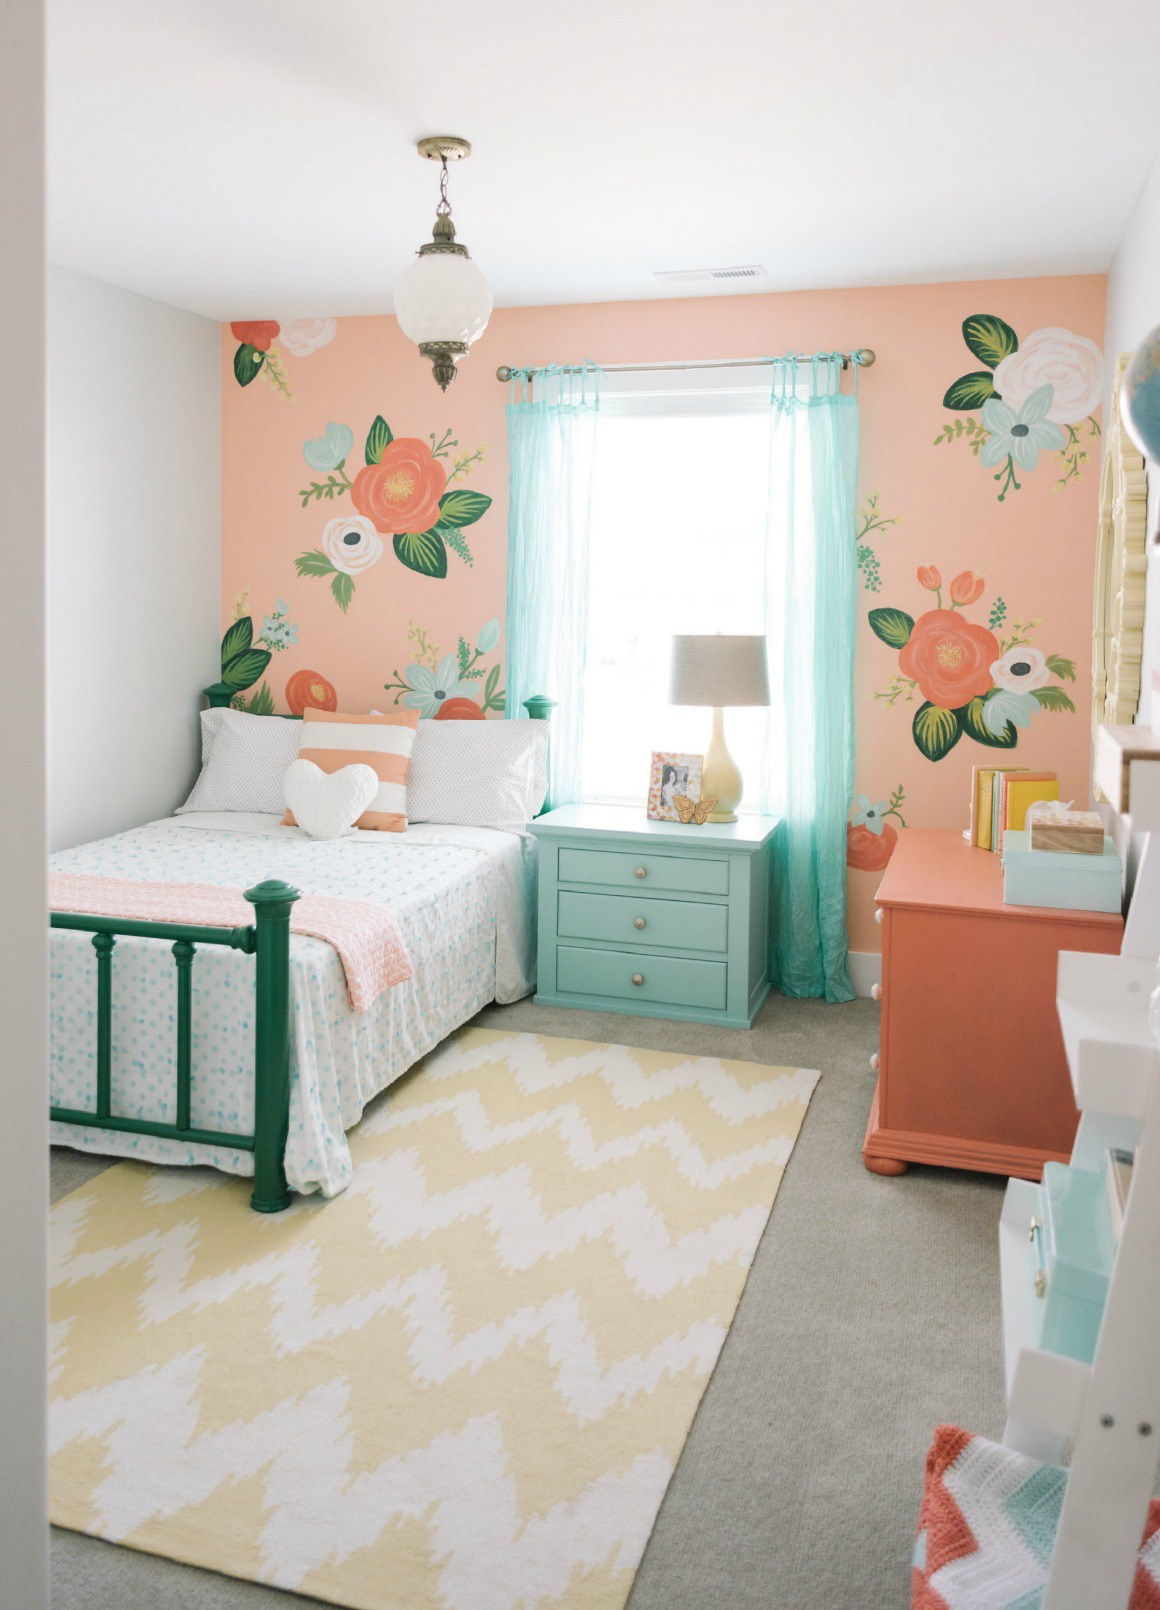 3 Room Hdb Accent Wall: Off The Wall: 10 Unique Accent Wall Ideas For Your Home